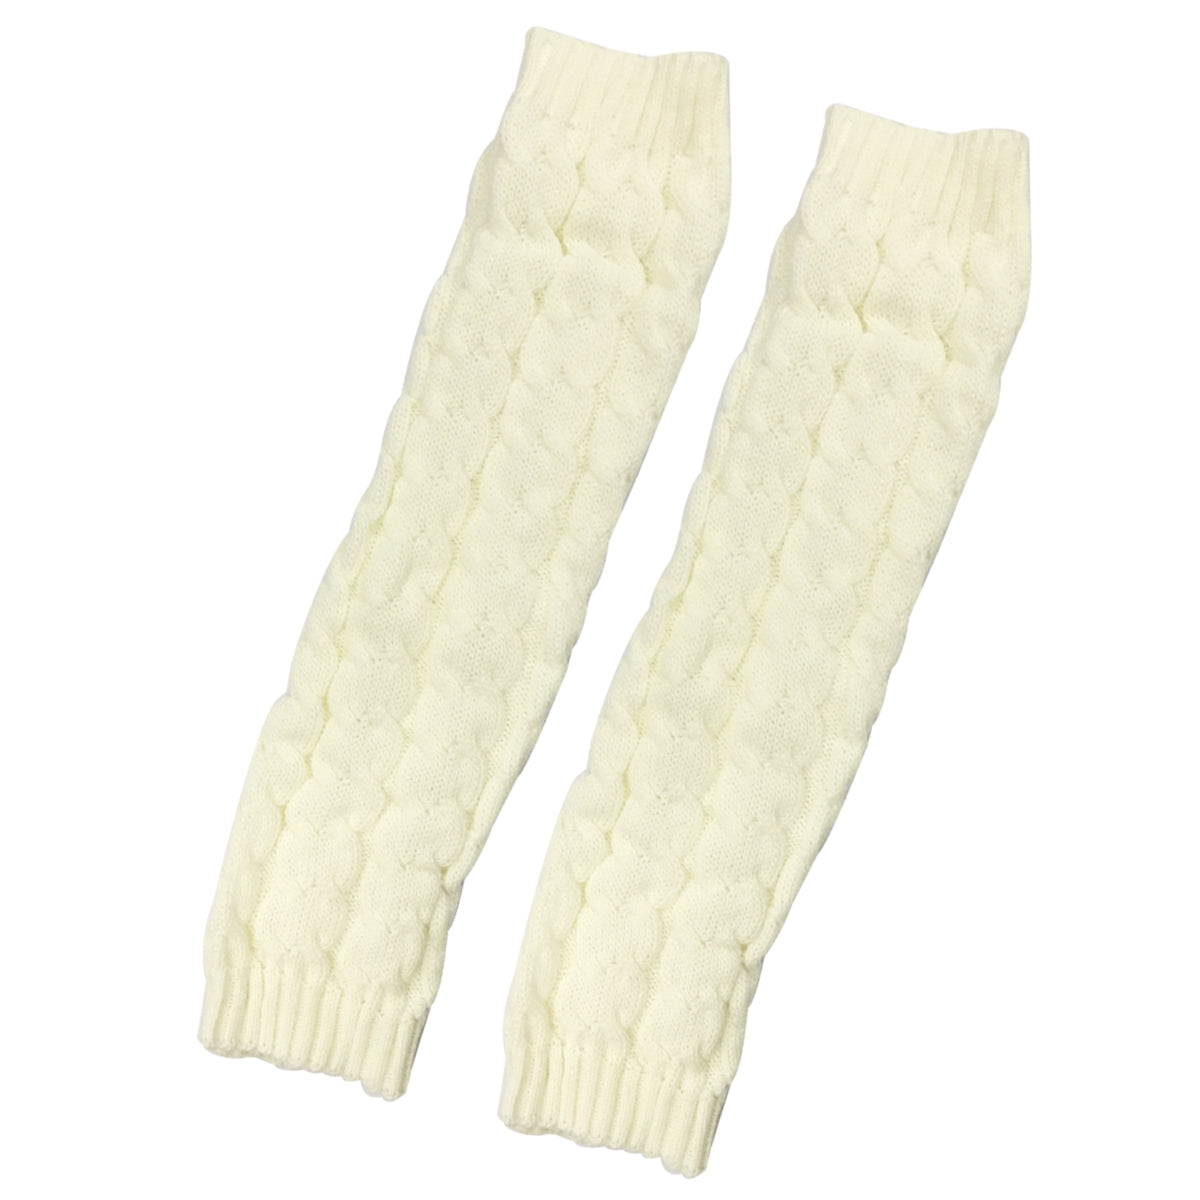 Wrapables Ribbed Cable Knit Leg Warmers for Women, Light Gray